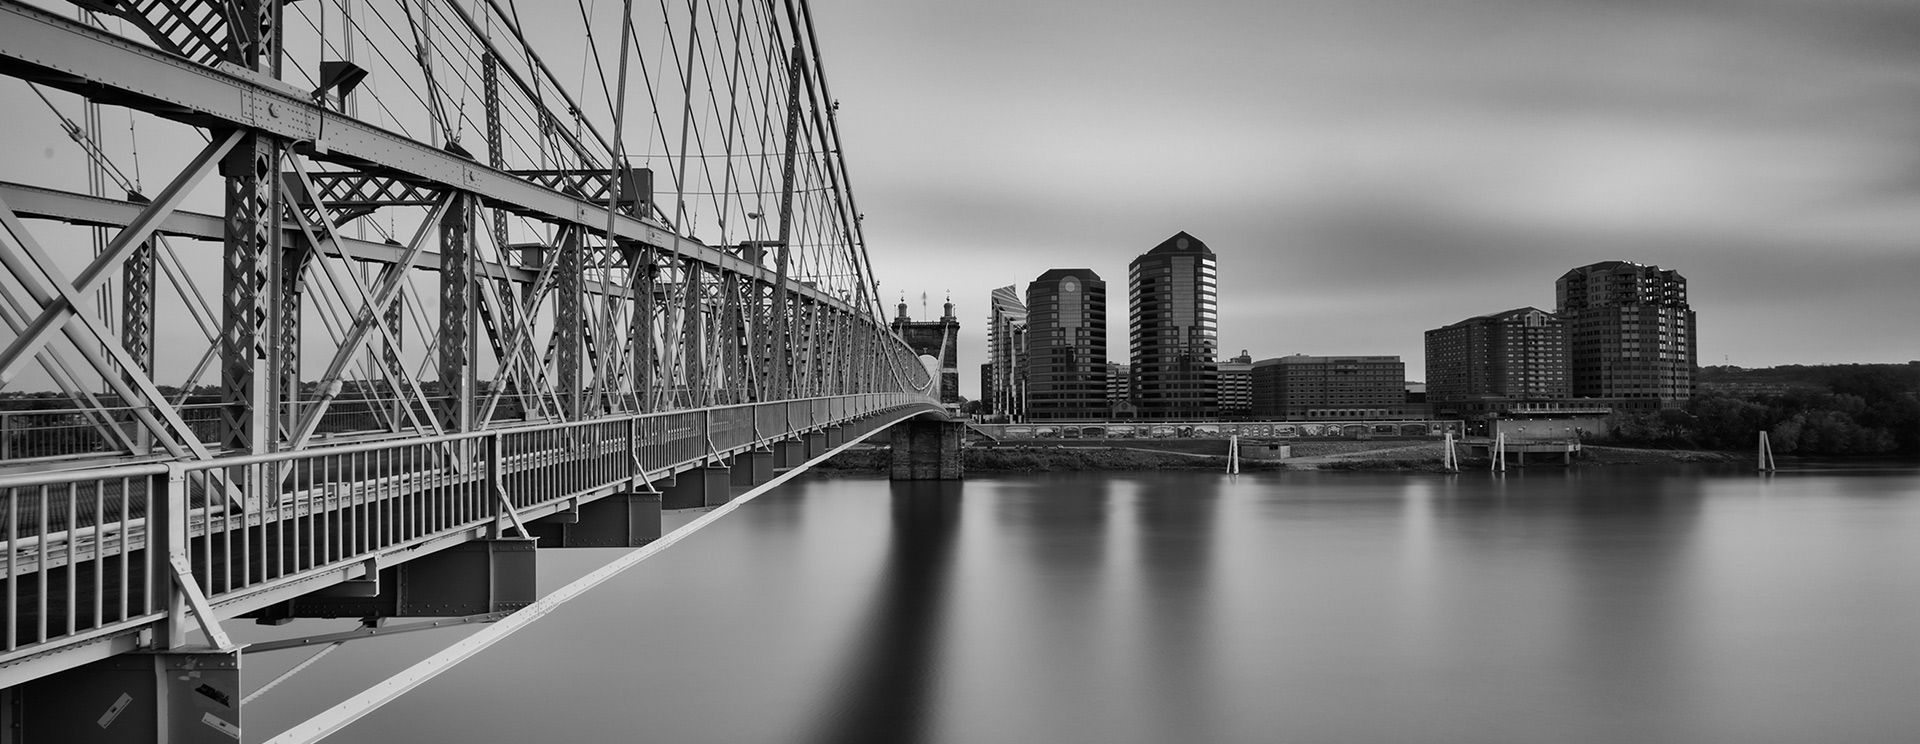 Learn Long Exposure Photography Online Courses- Pixel Viilage